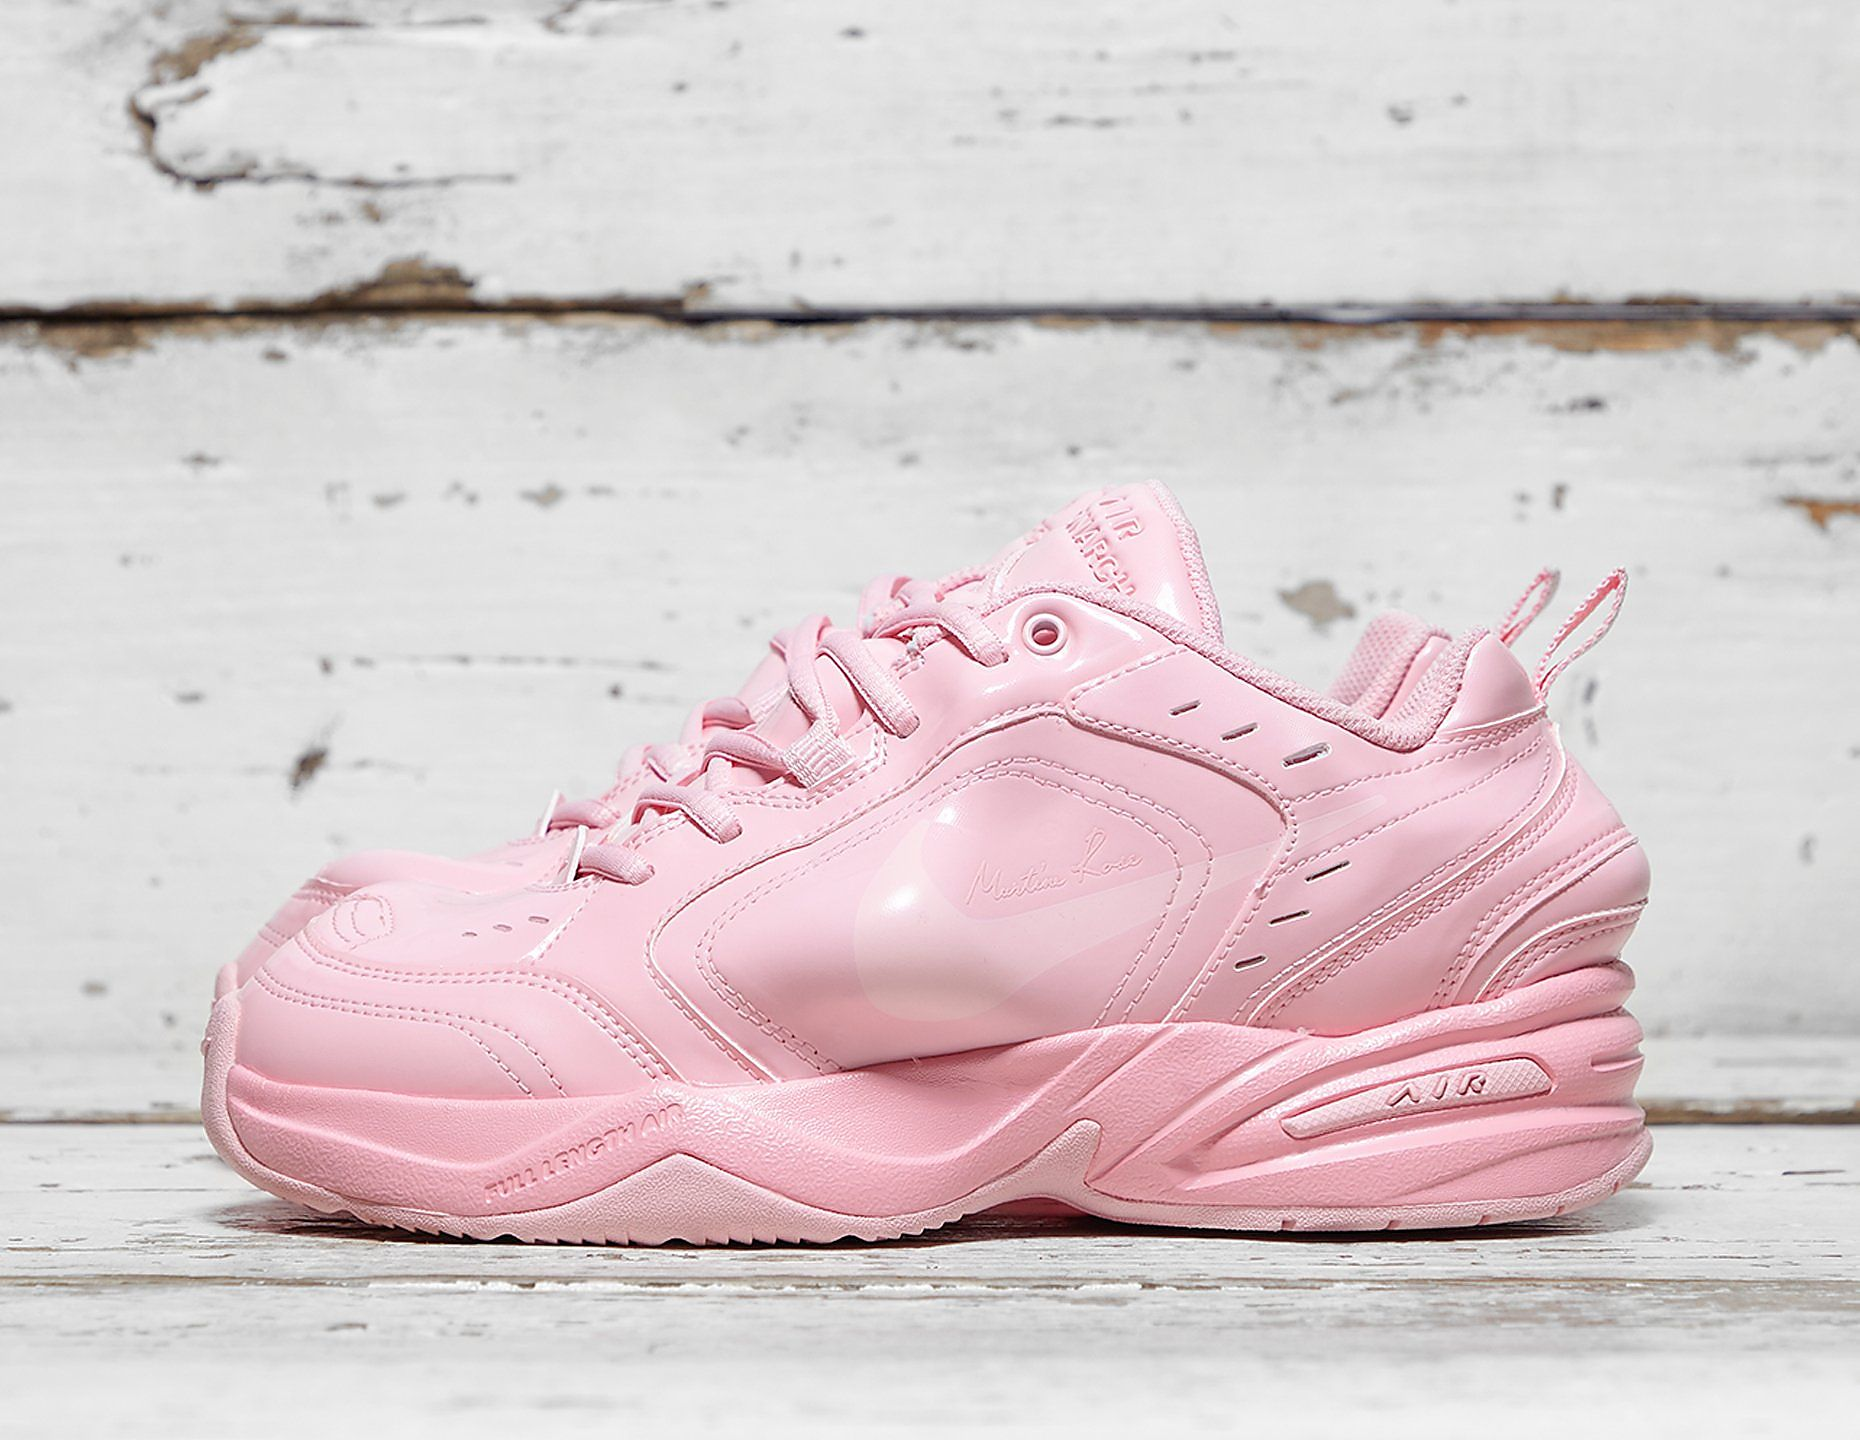 Martine Air Monarch IvFootpatrol Nike X Rose n0wvmN8